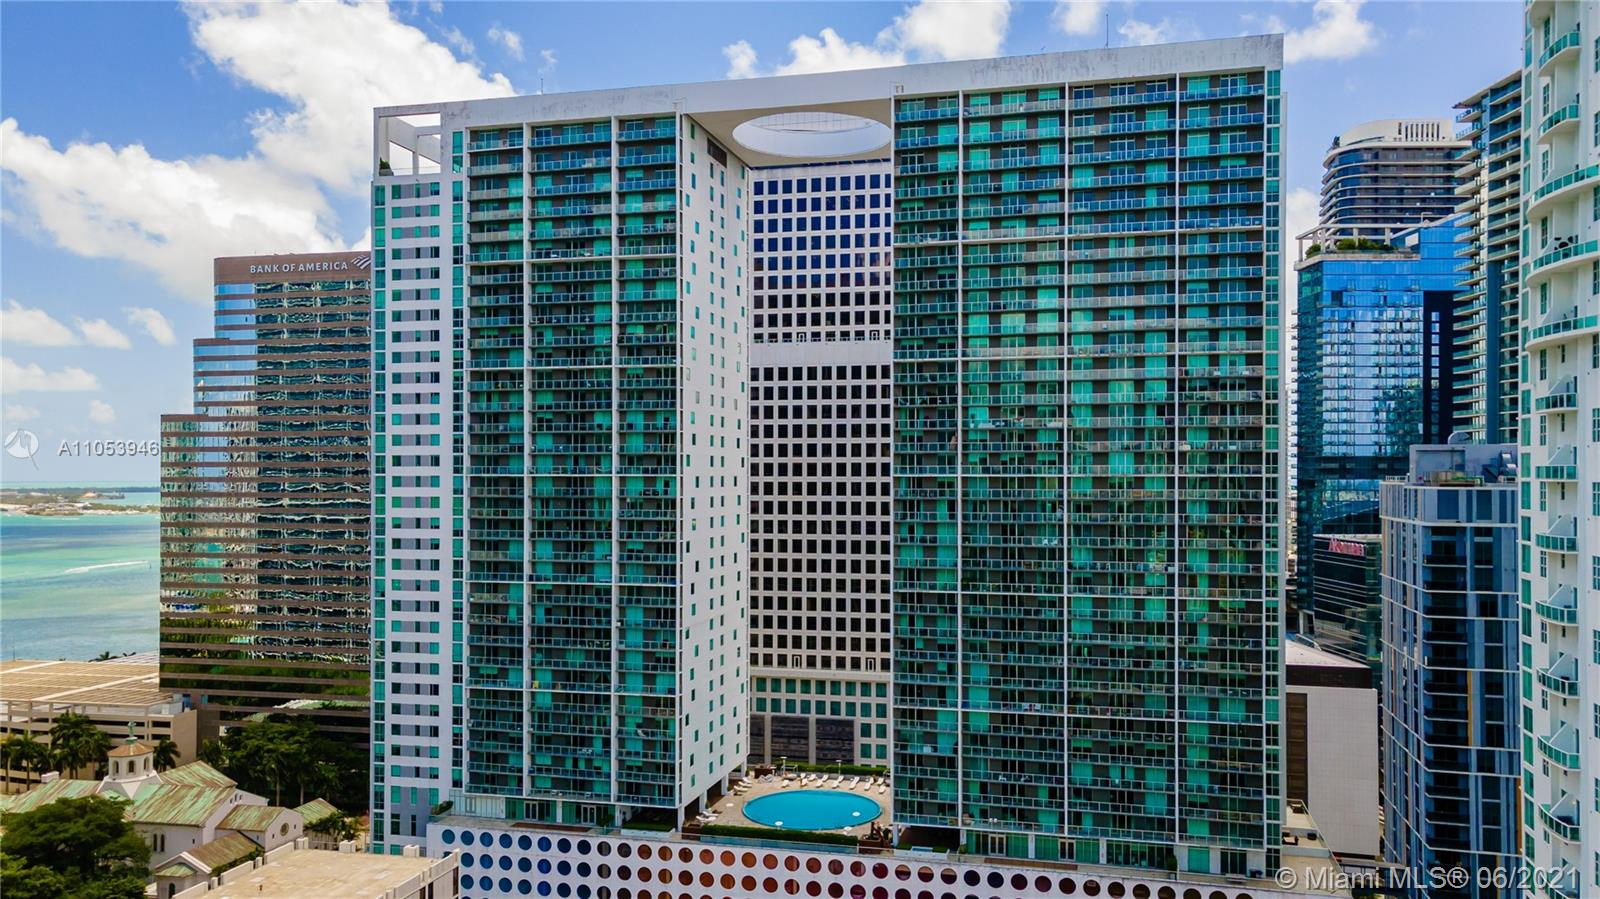 In the heart of downtown Miami, with a luxury urban oasis lifestyle, this corner unit offers spectacular views of the downtown Miami skyline and the Miami River.  On the 41st floor, with top quality stainless steel appliances.  Enjoy all the amenities: pool, gym, clubhouse, resident pool with sundeck, party rooms.  Exclusive and exciting nightlife, restaurants, bars in Brickell and Miami Downtown.  Easy access to Metro Mover and I-95.  Close to downtown Brickell.